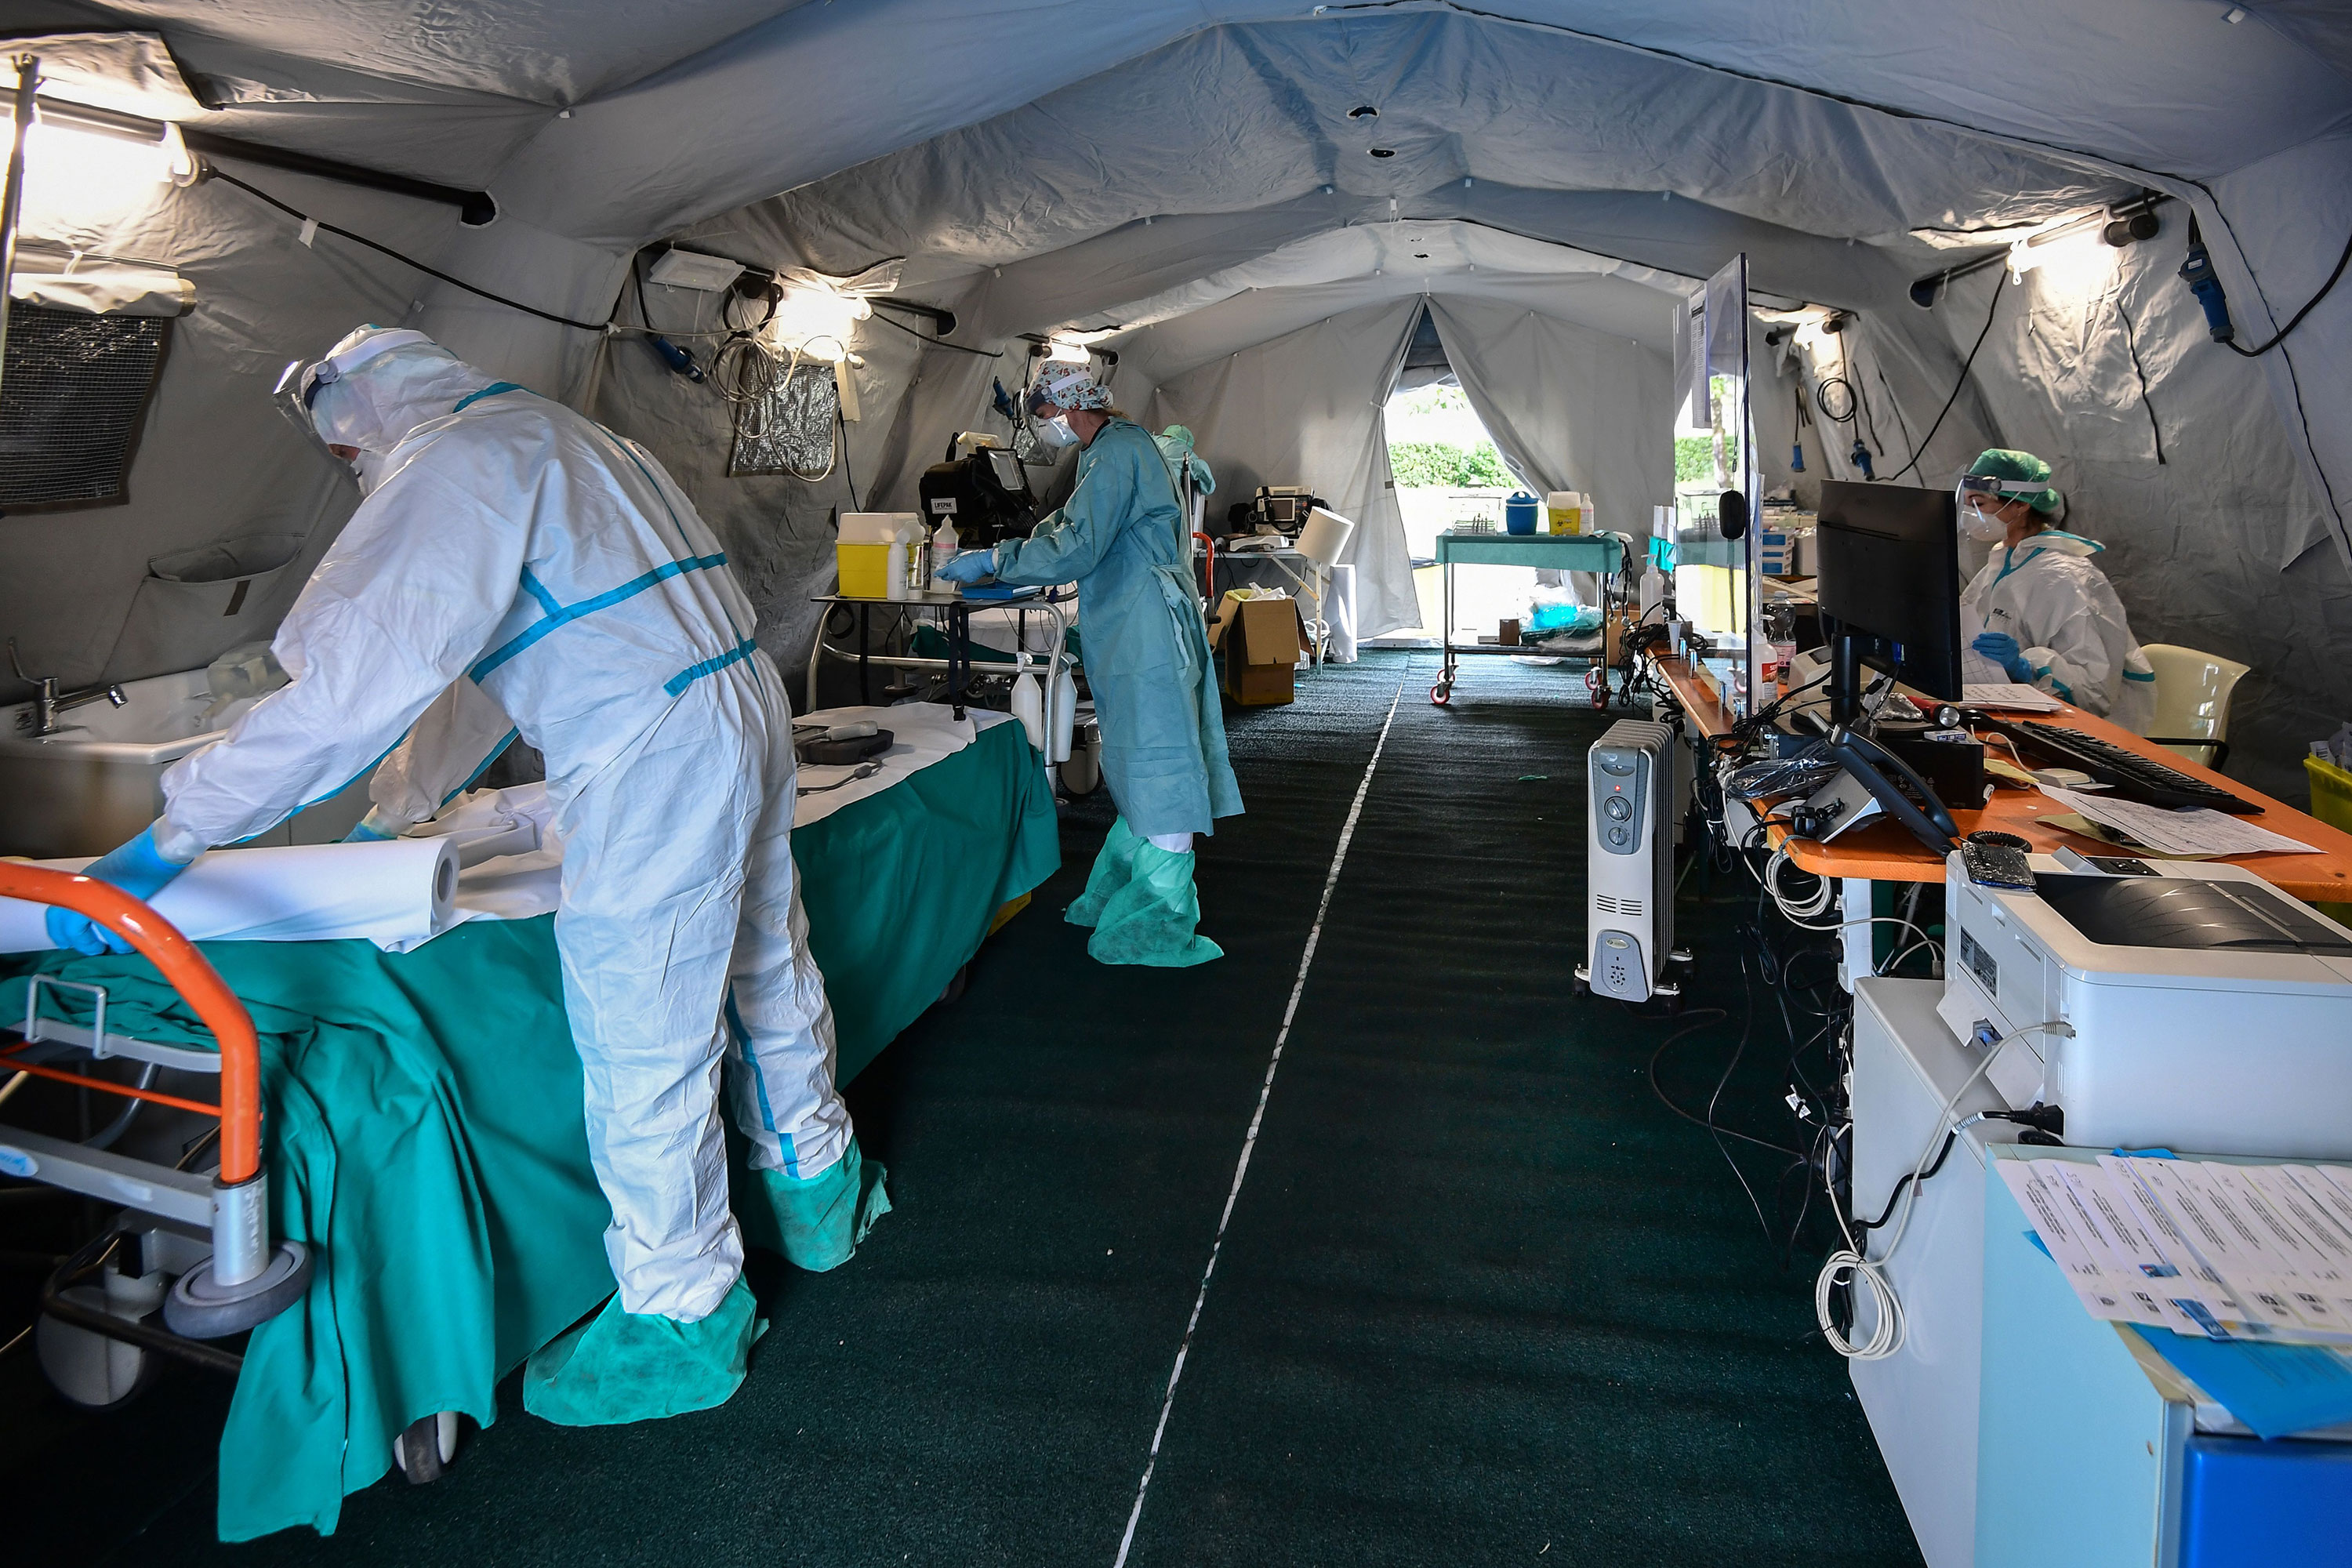 Hospital workers wearing protective masks and gear work in a patients' triage tent at a temporary emergency structure set up outside a hospital in Brescia, Italy, on March 13.